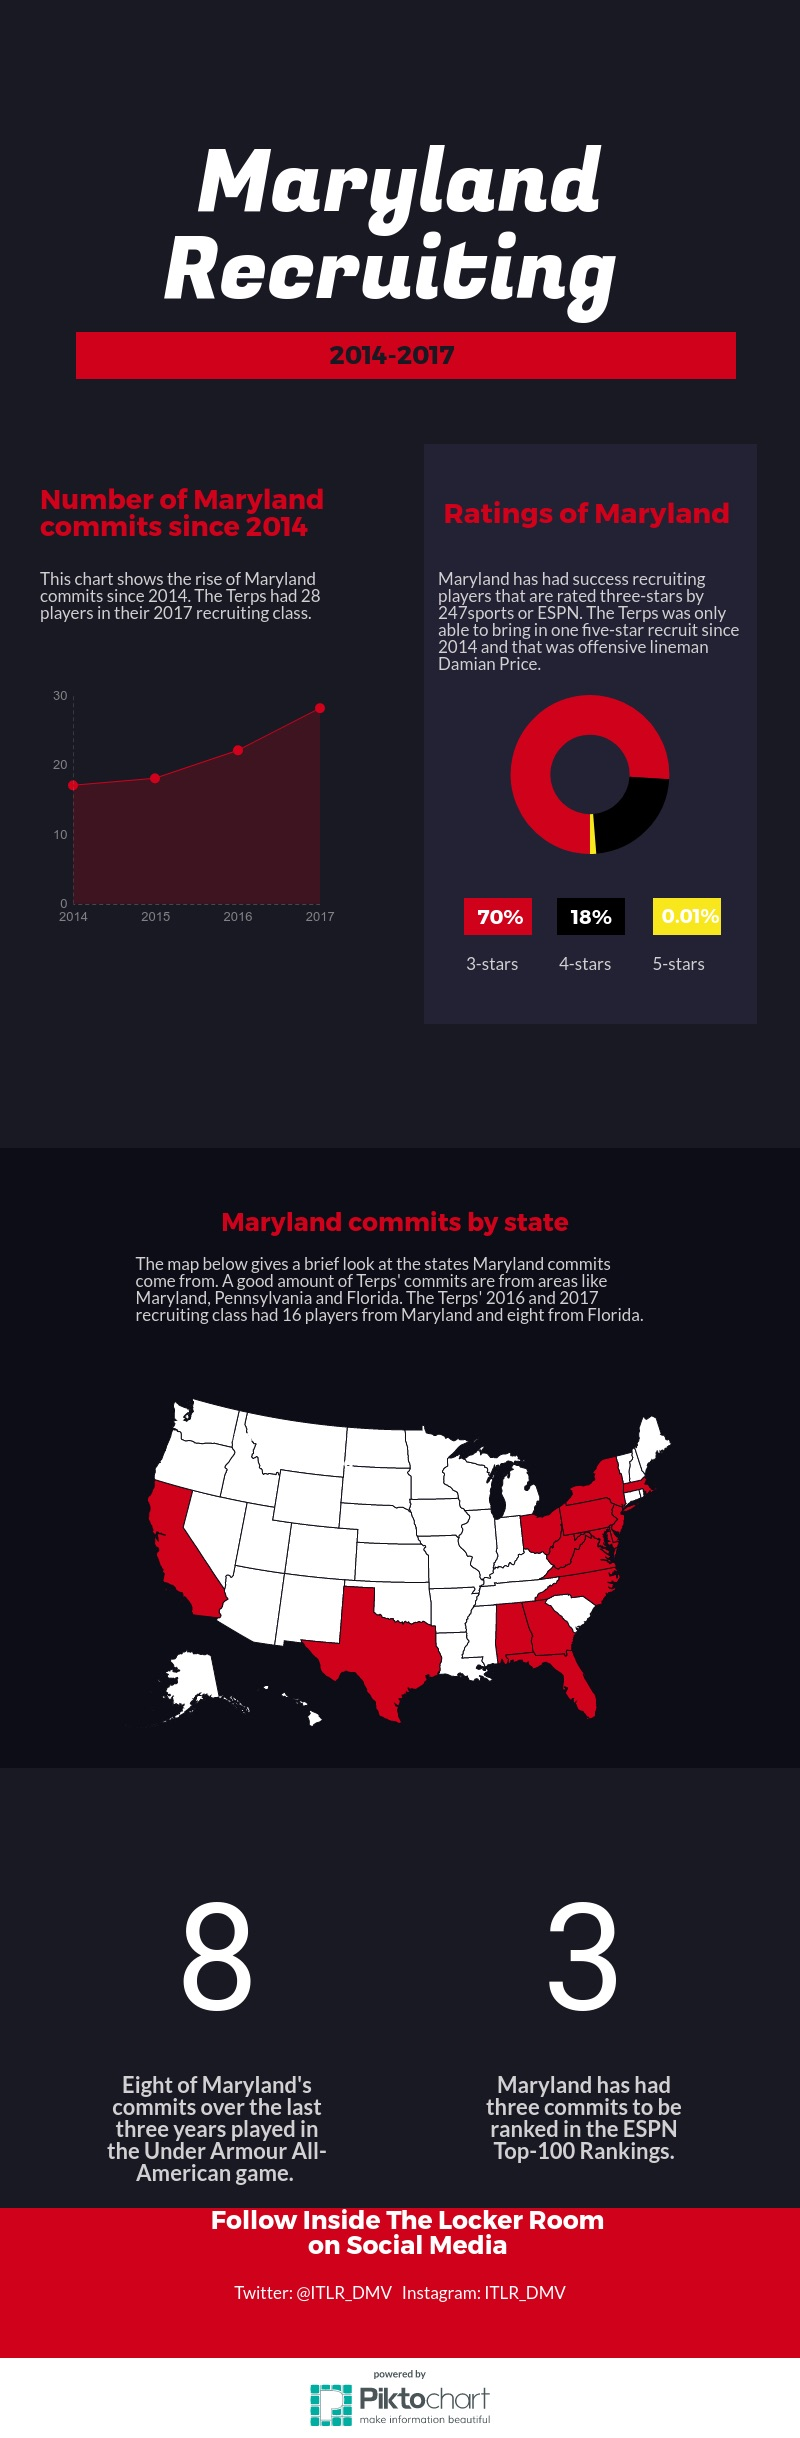 MarylandRecruitingChart2